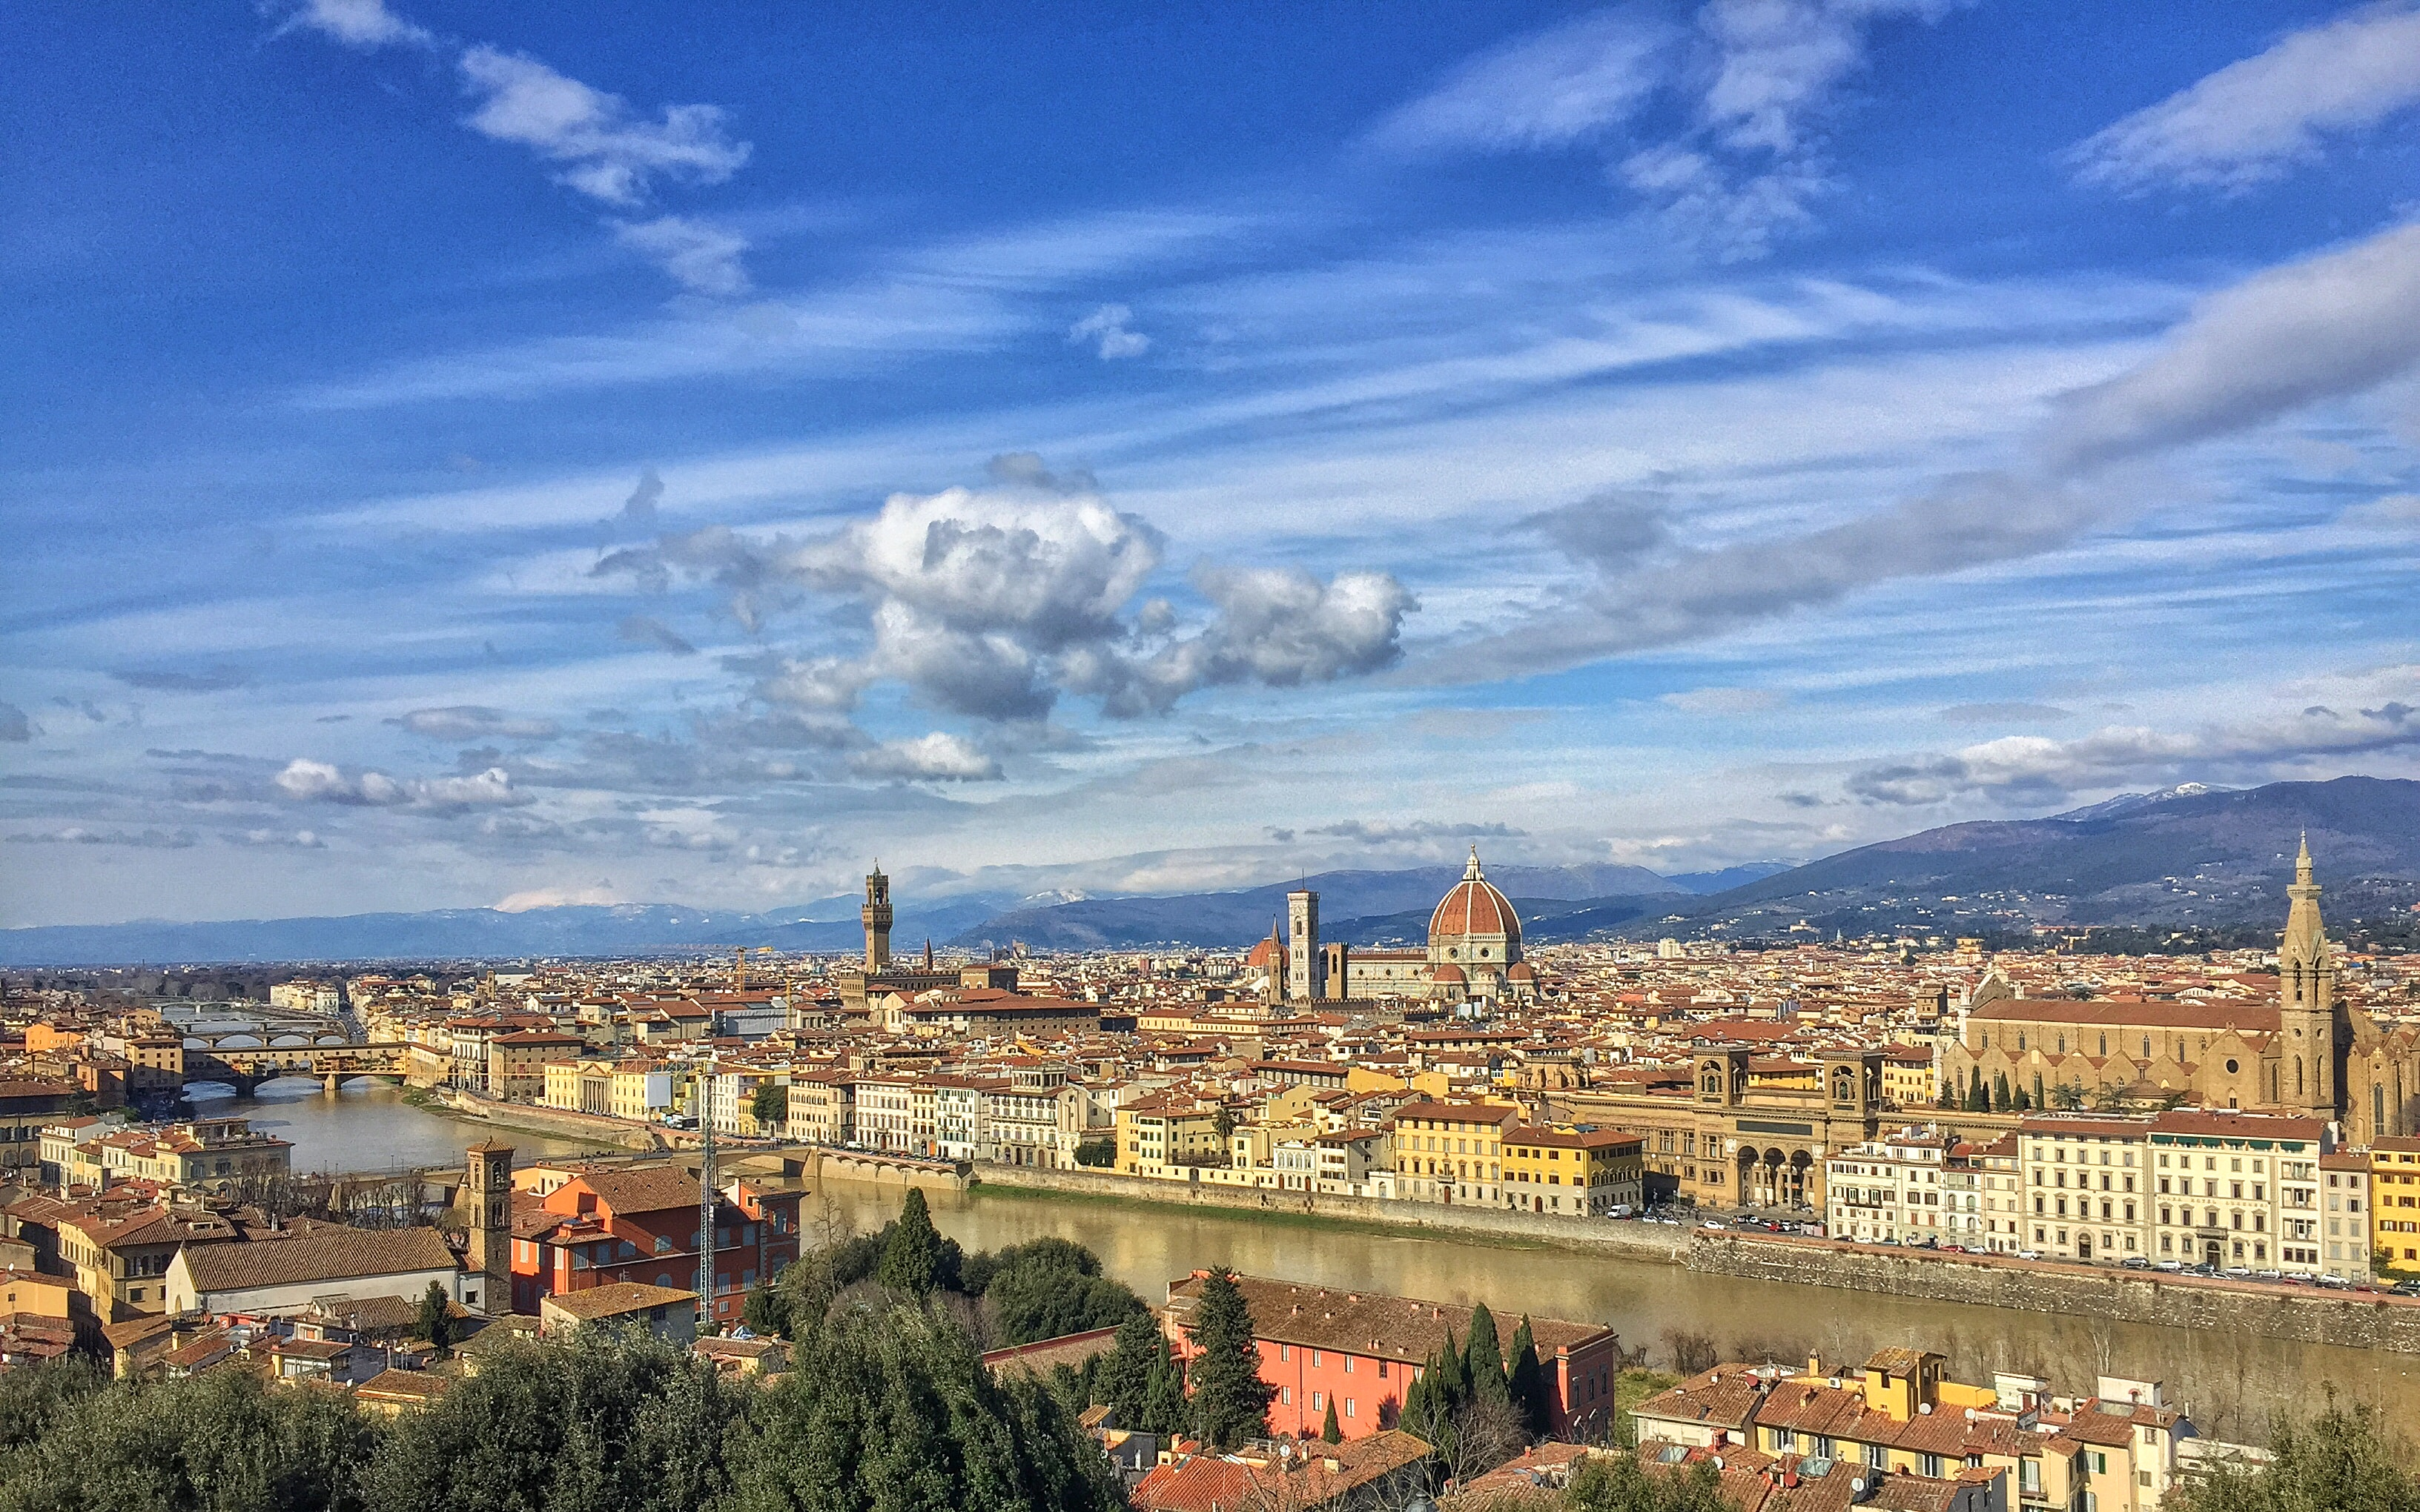 Italian Florence: Florence's Oltrarno